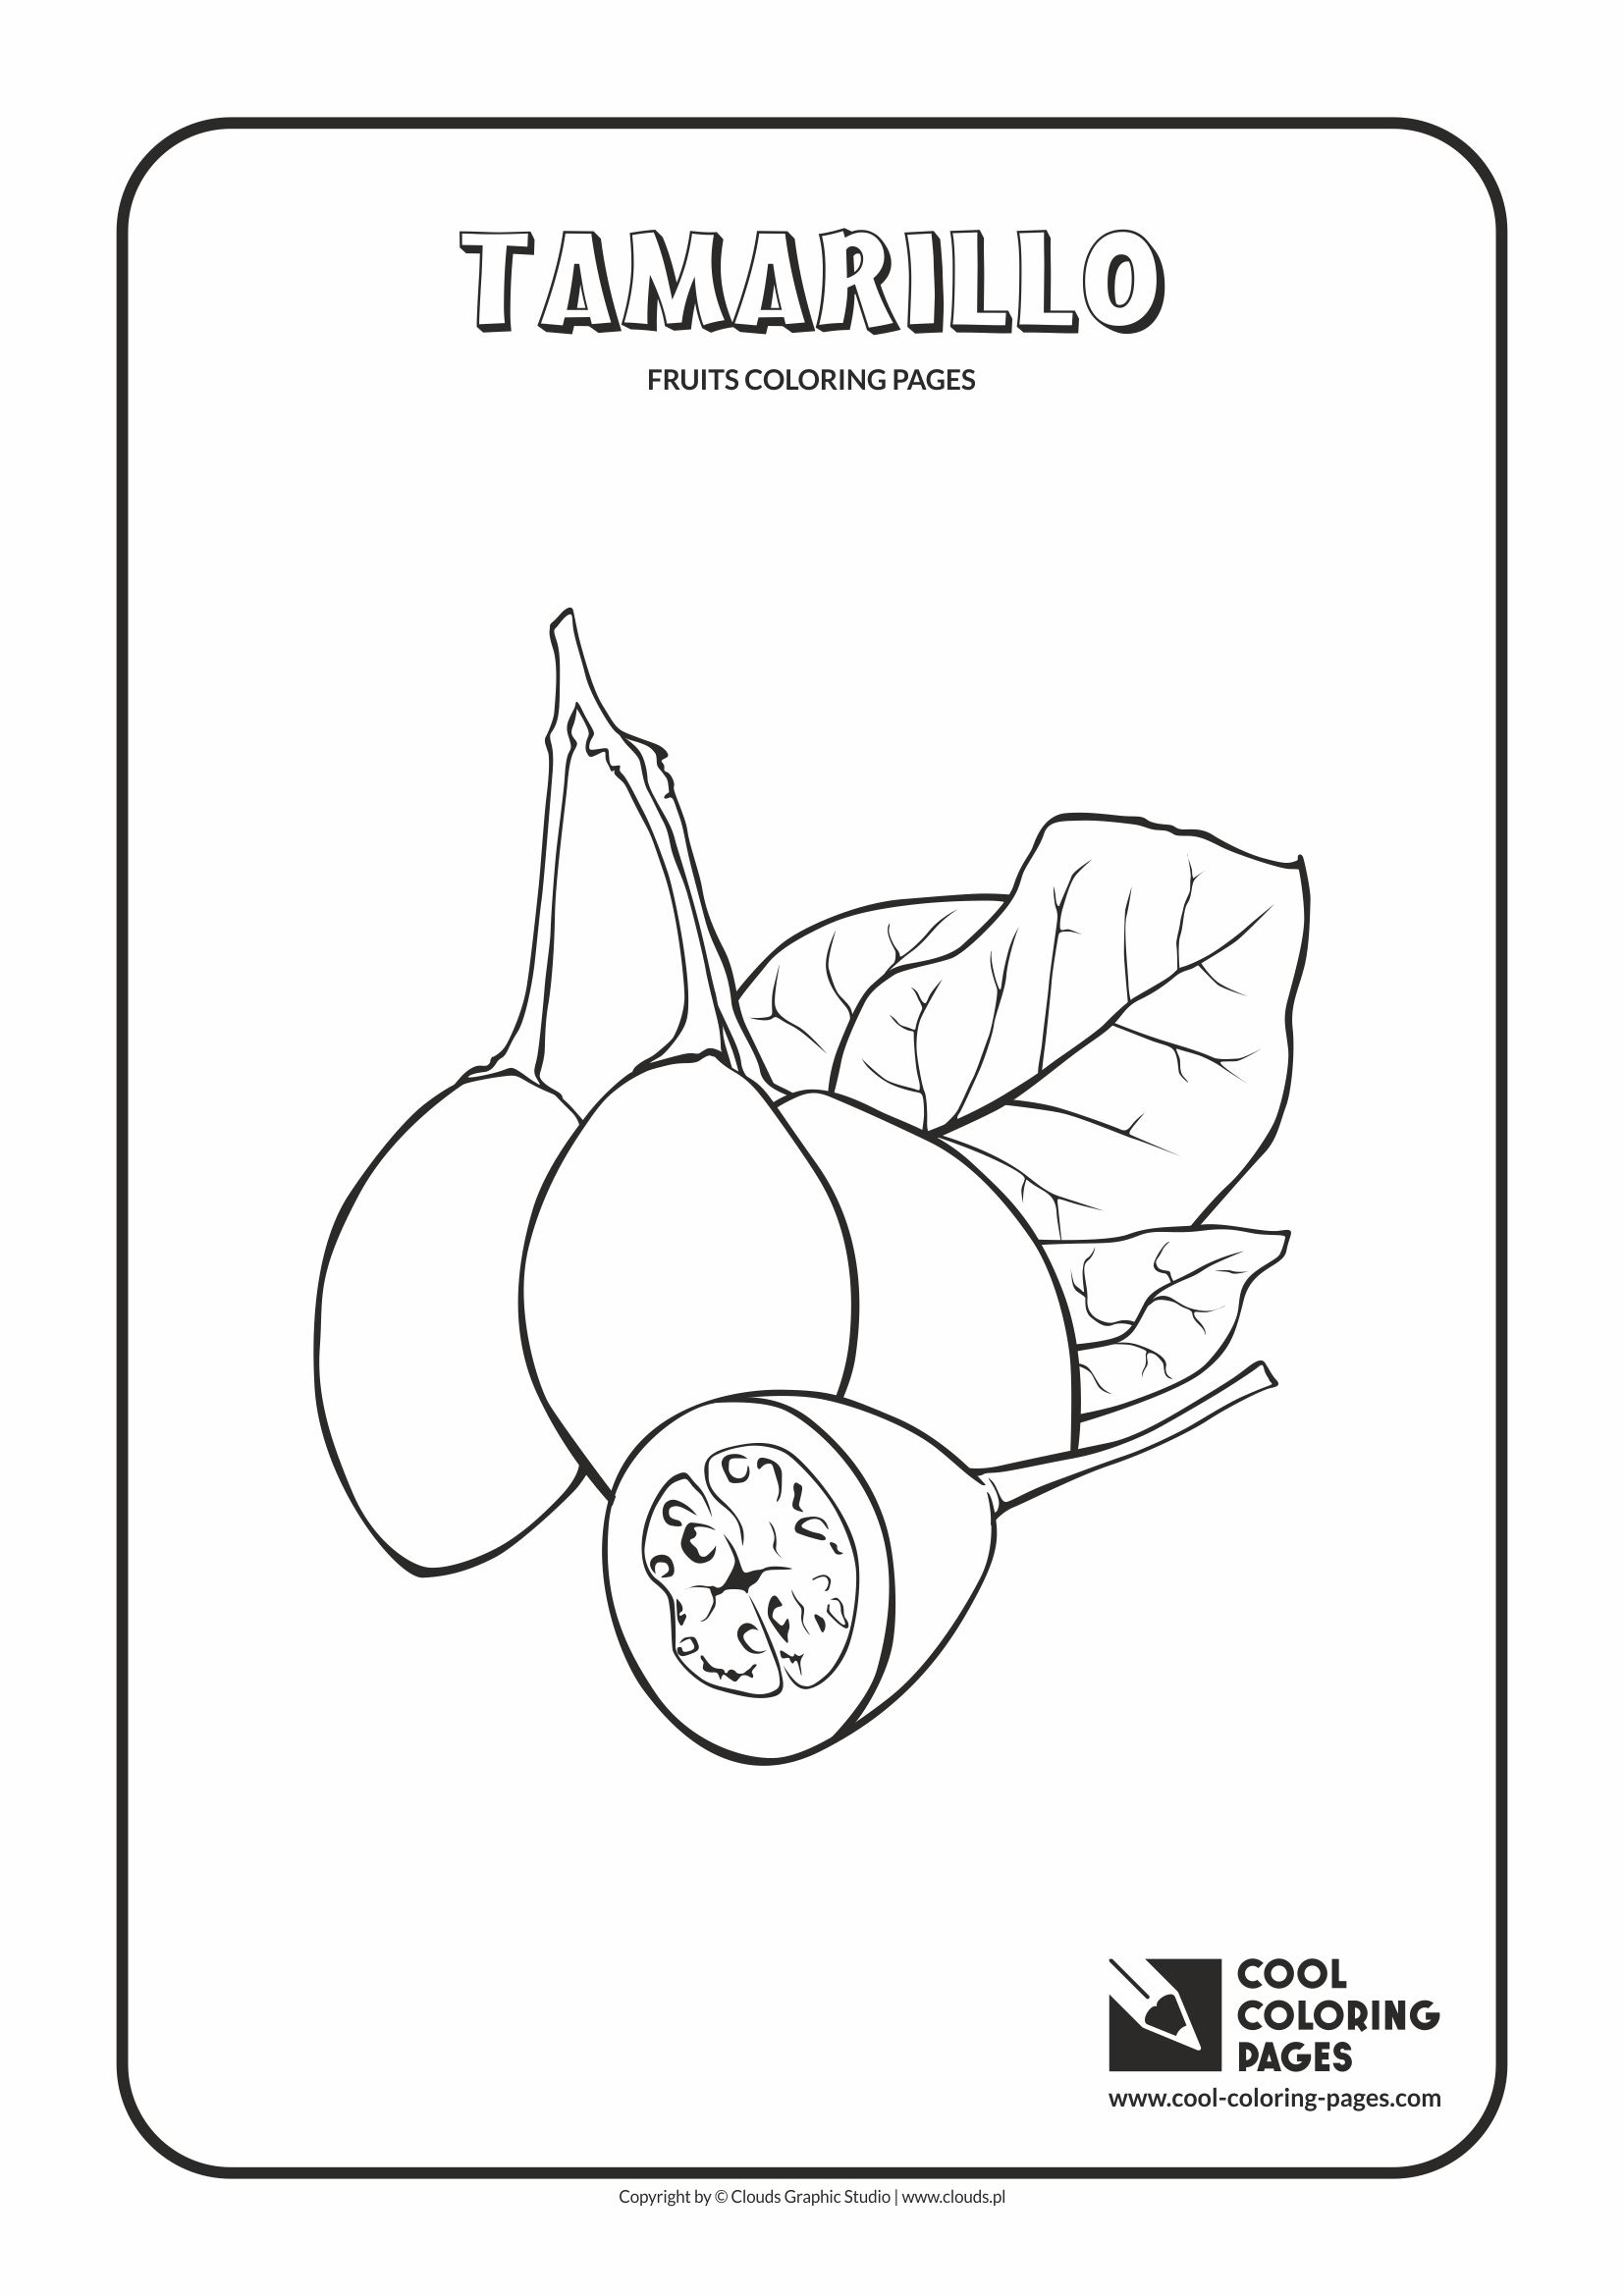 tamarillo coloring page cool coloring pages